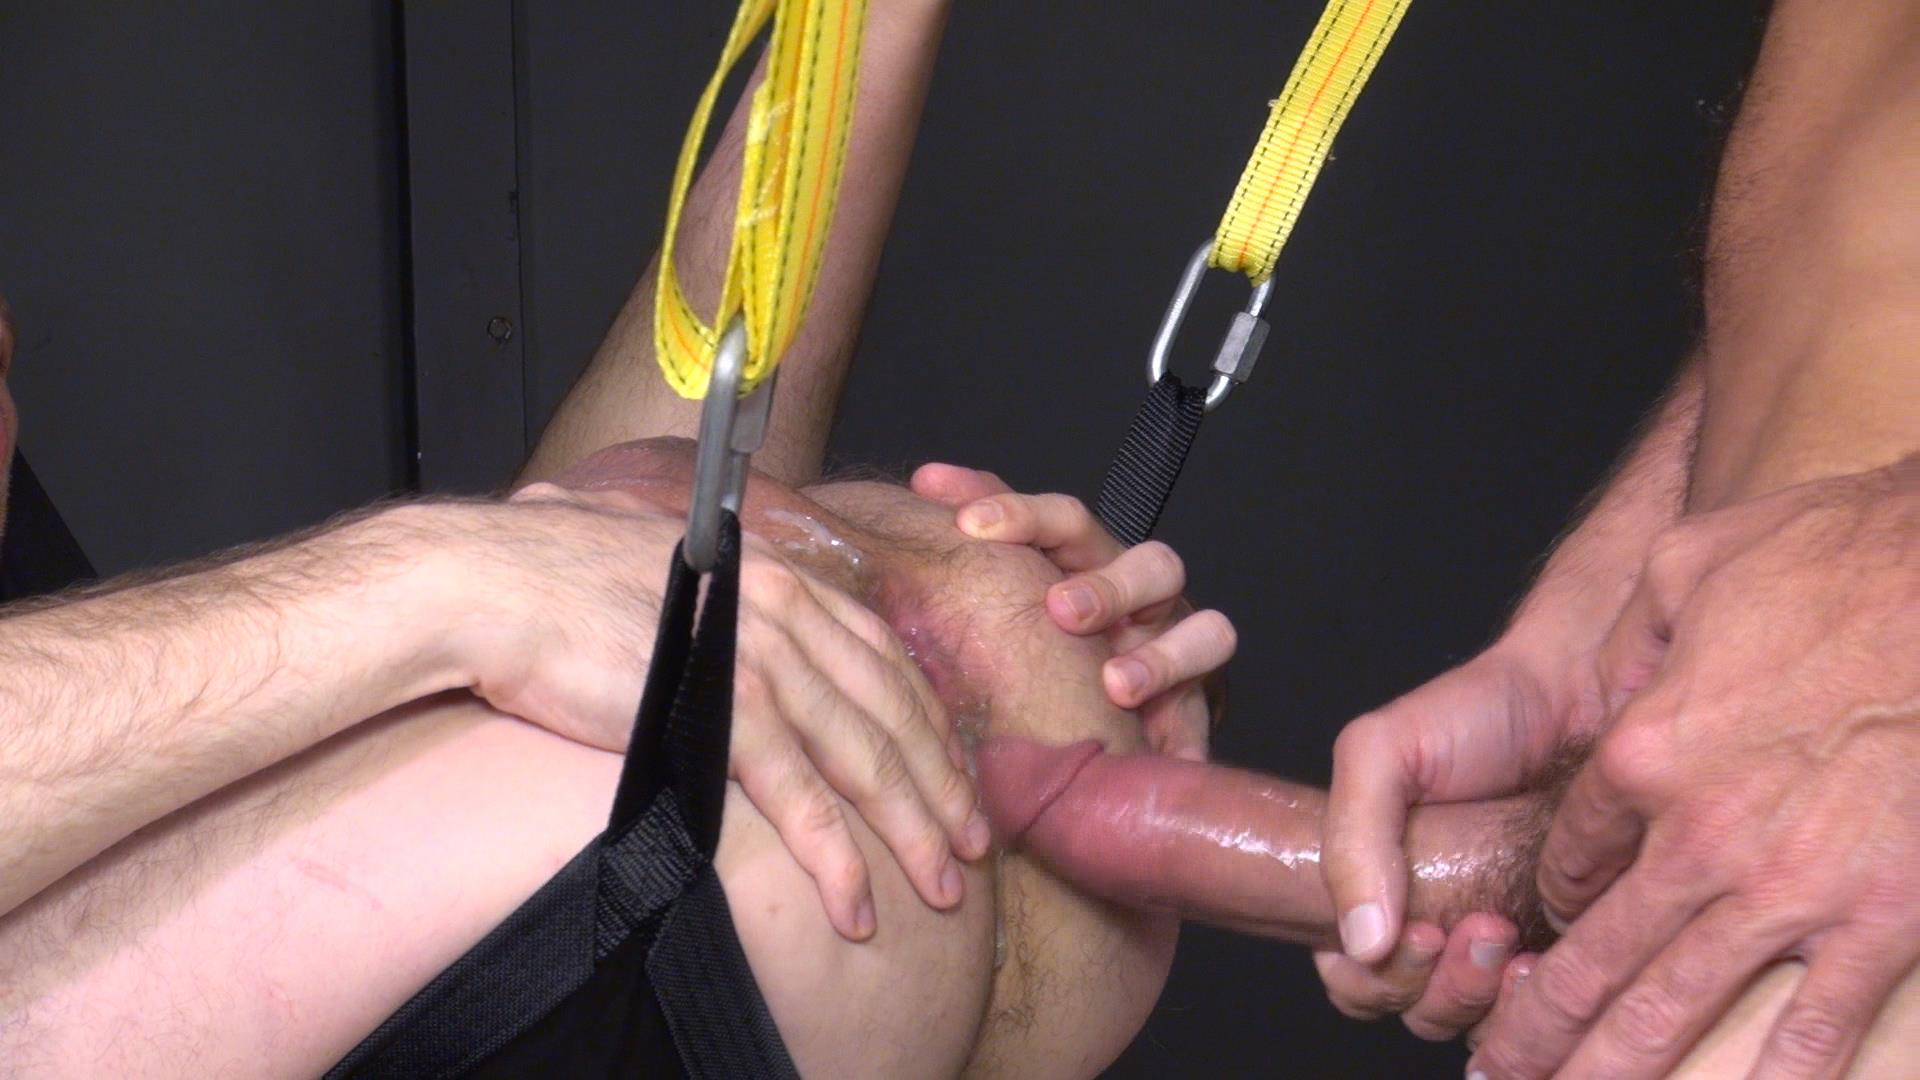 Raw-and-Rough-Blake-Dawson-and-Super-Steve-Horse-Cock-Bareback-Breeding-Amateur-Gay-Porn-01 Huge Cock Bareback Breeding A Tight Hole In A Sex Sling